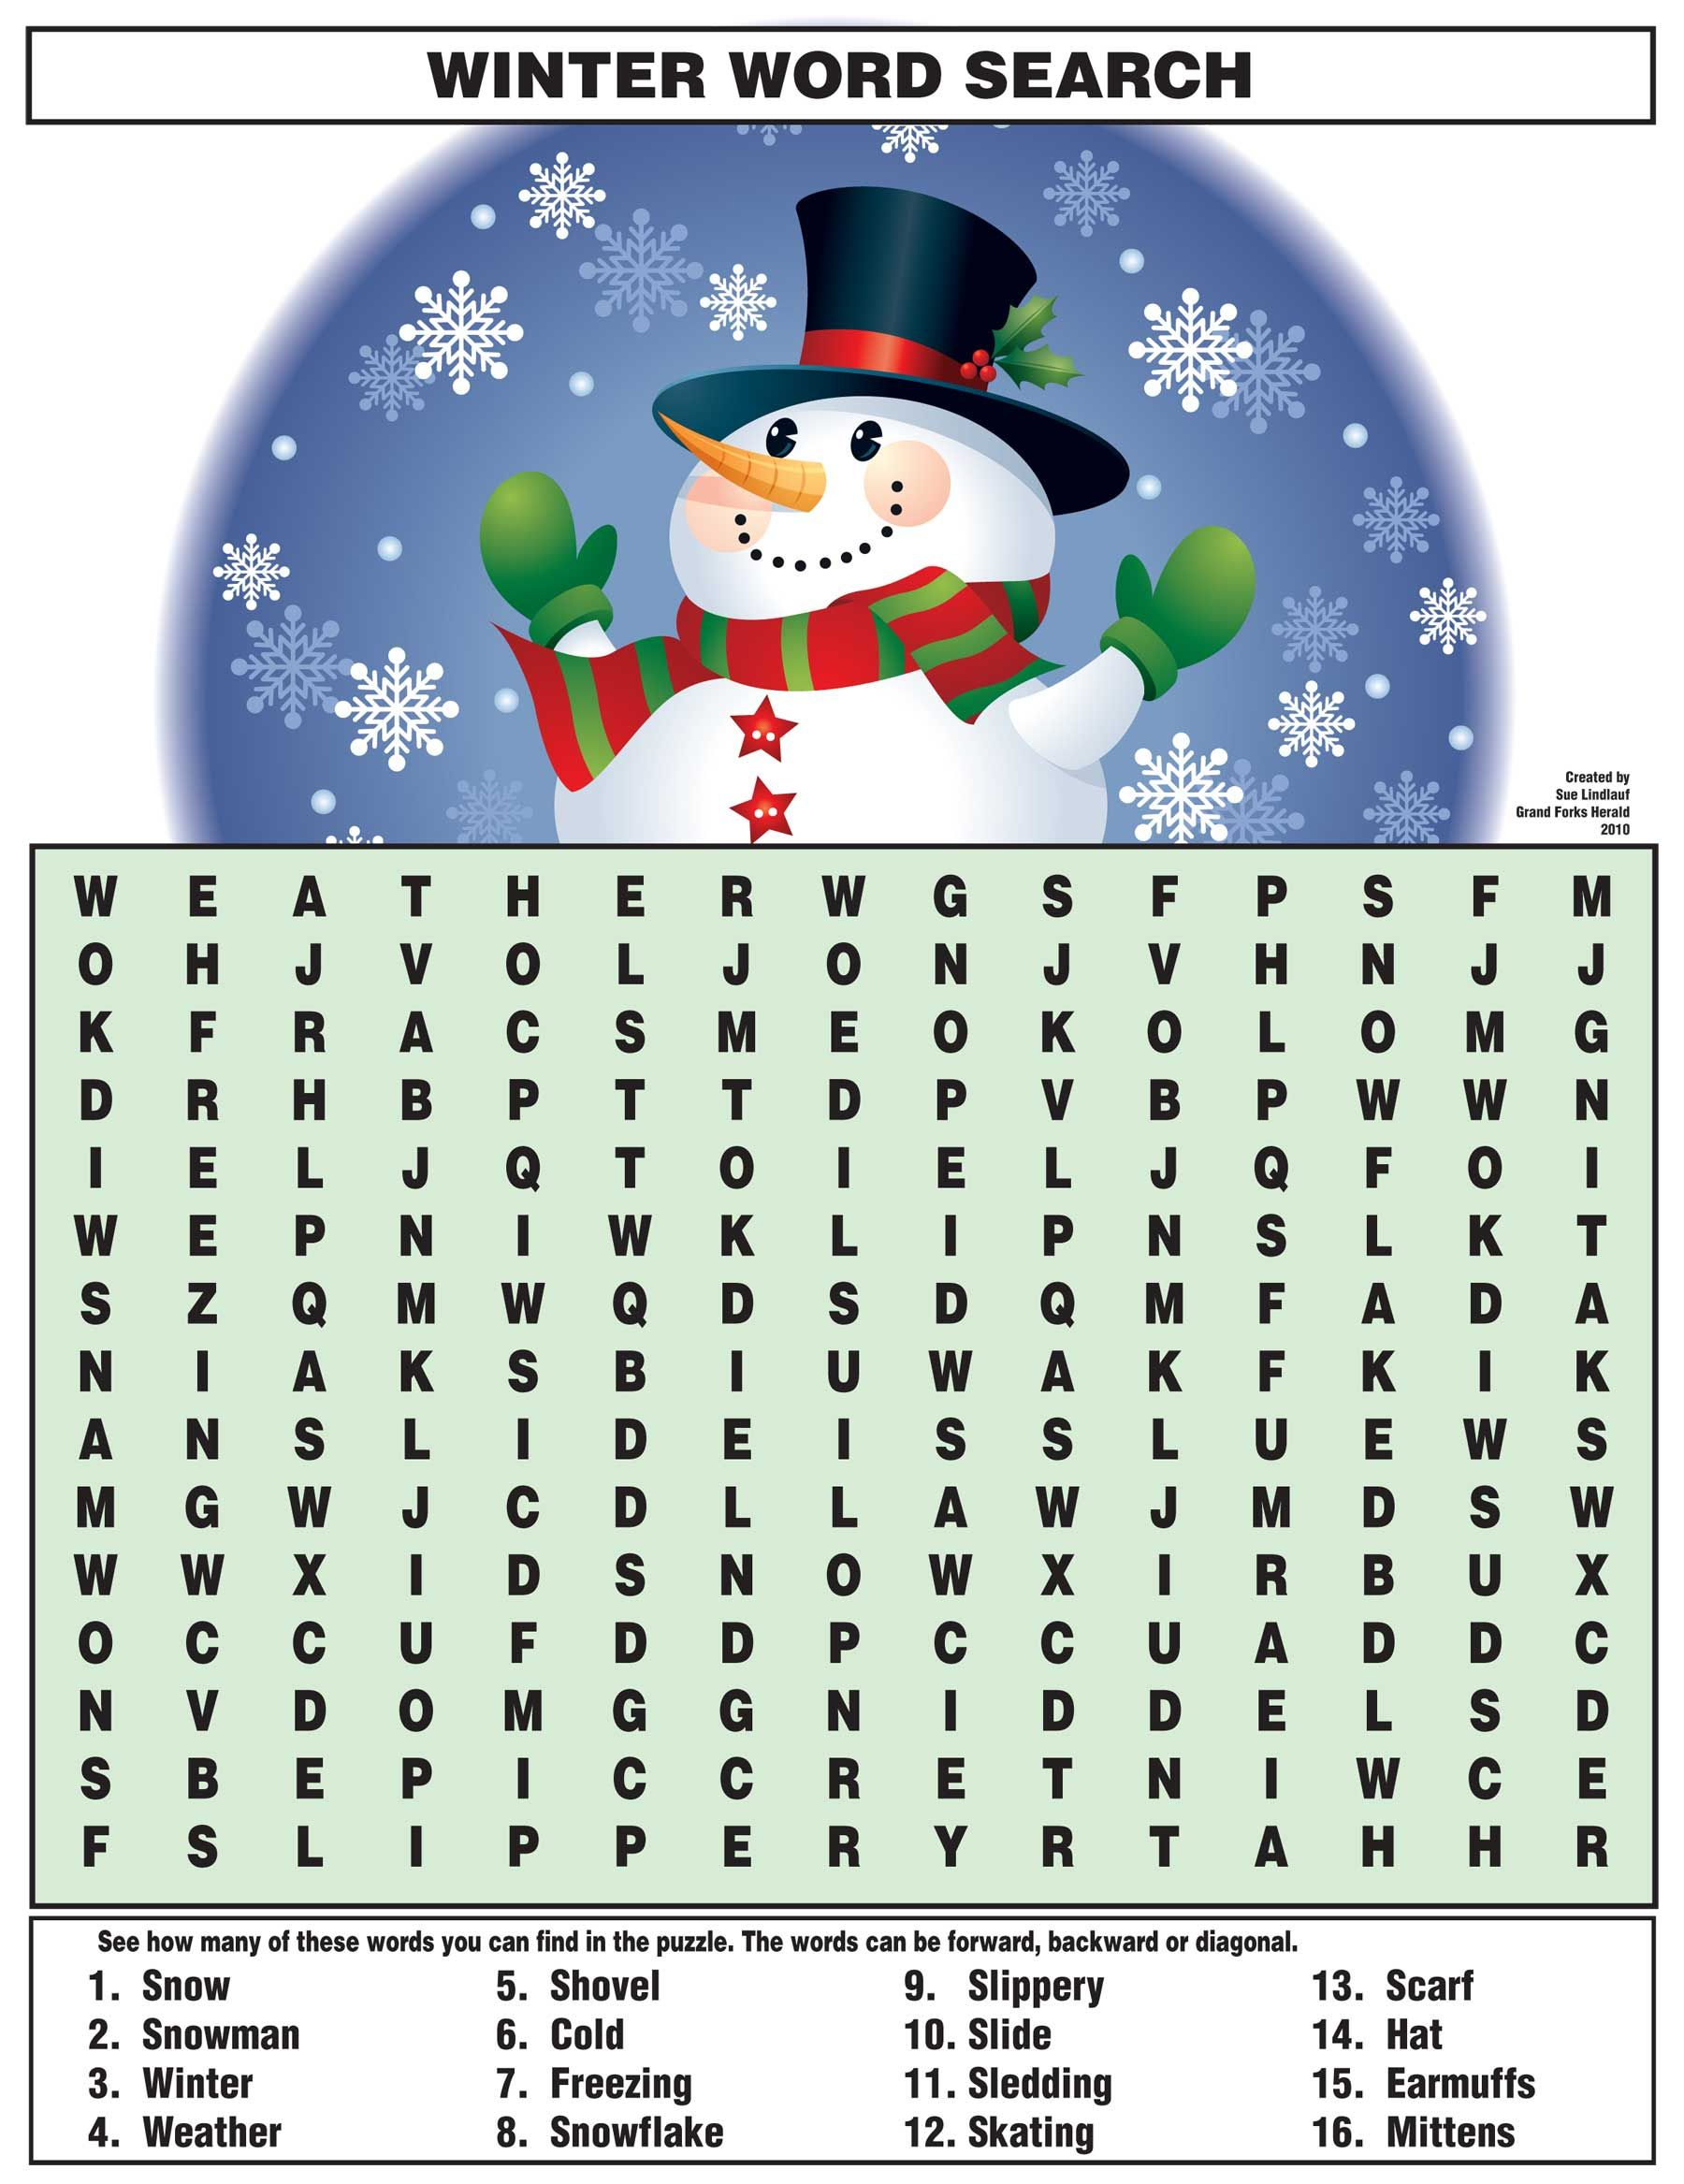 Winter Word Search S S Durban